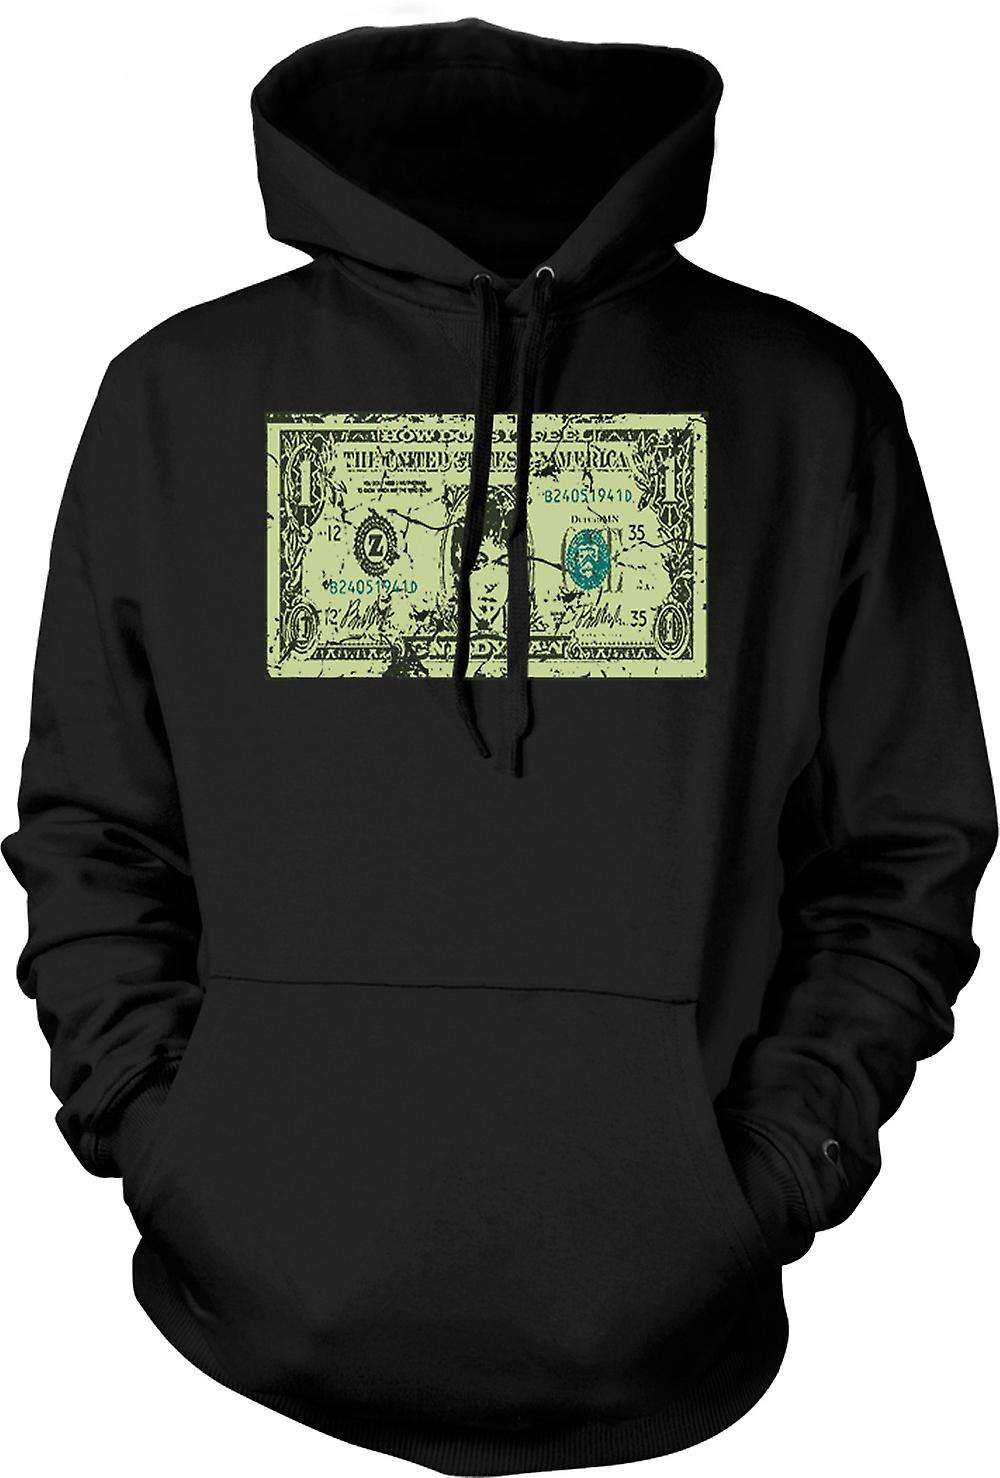 Kids Hoodie - Bob Dylan One Dylan - Funny